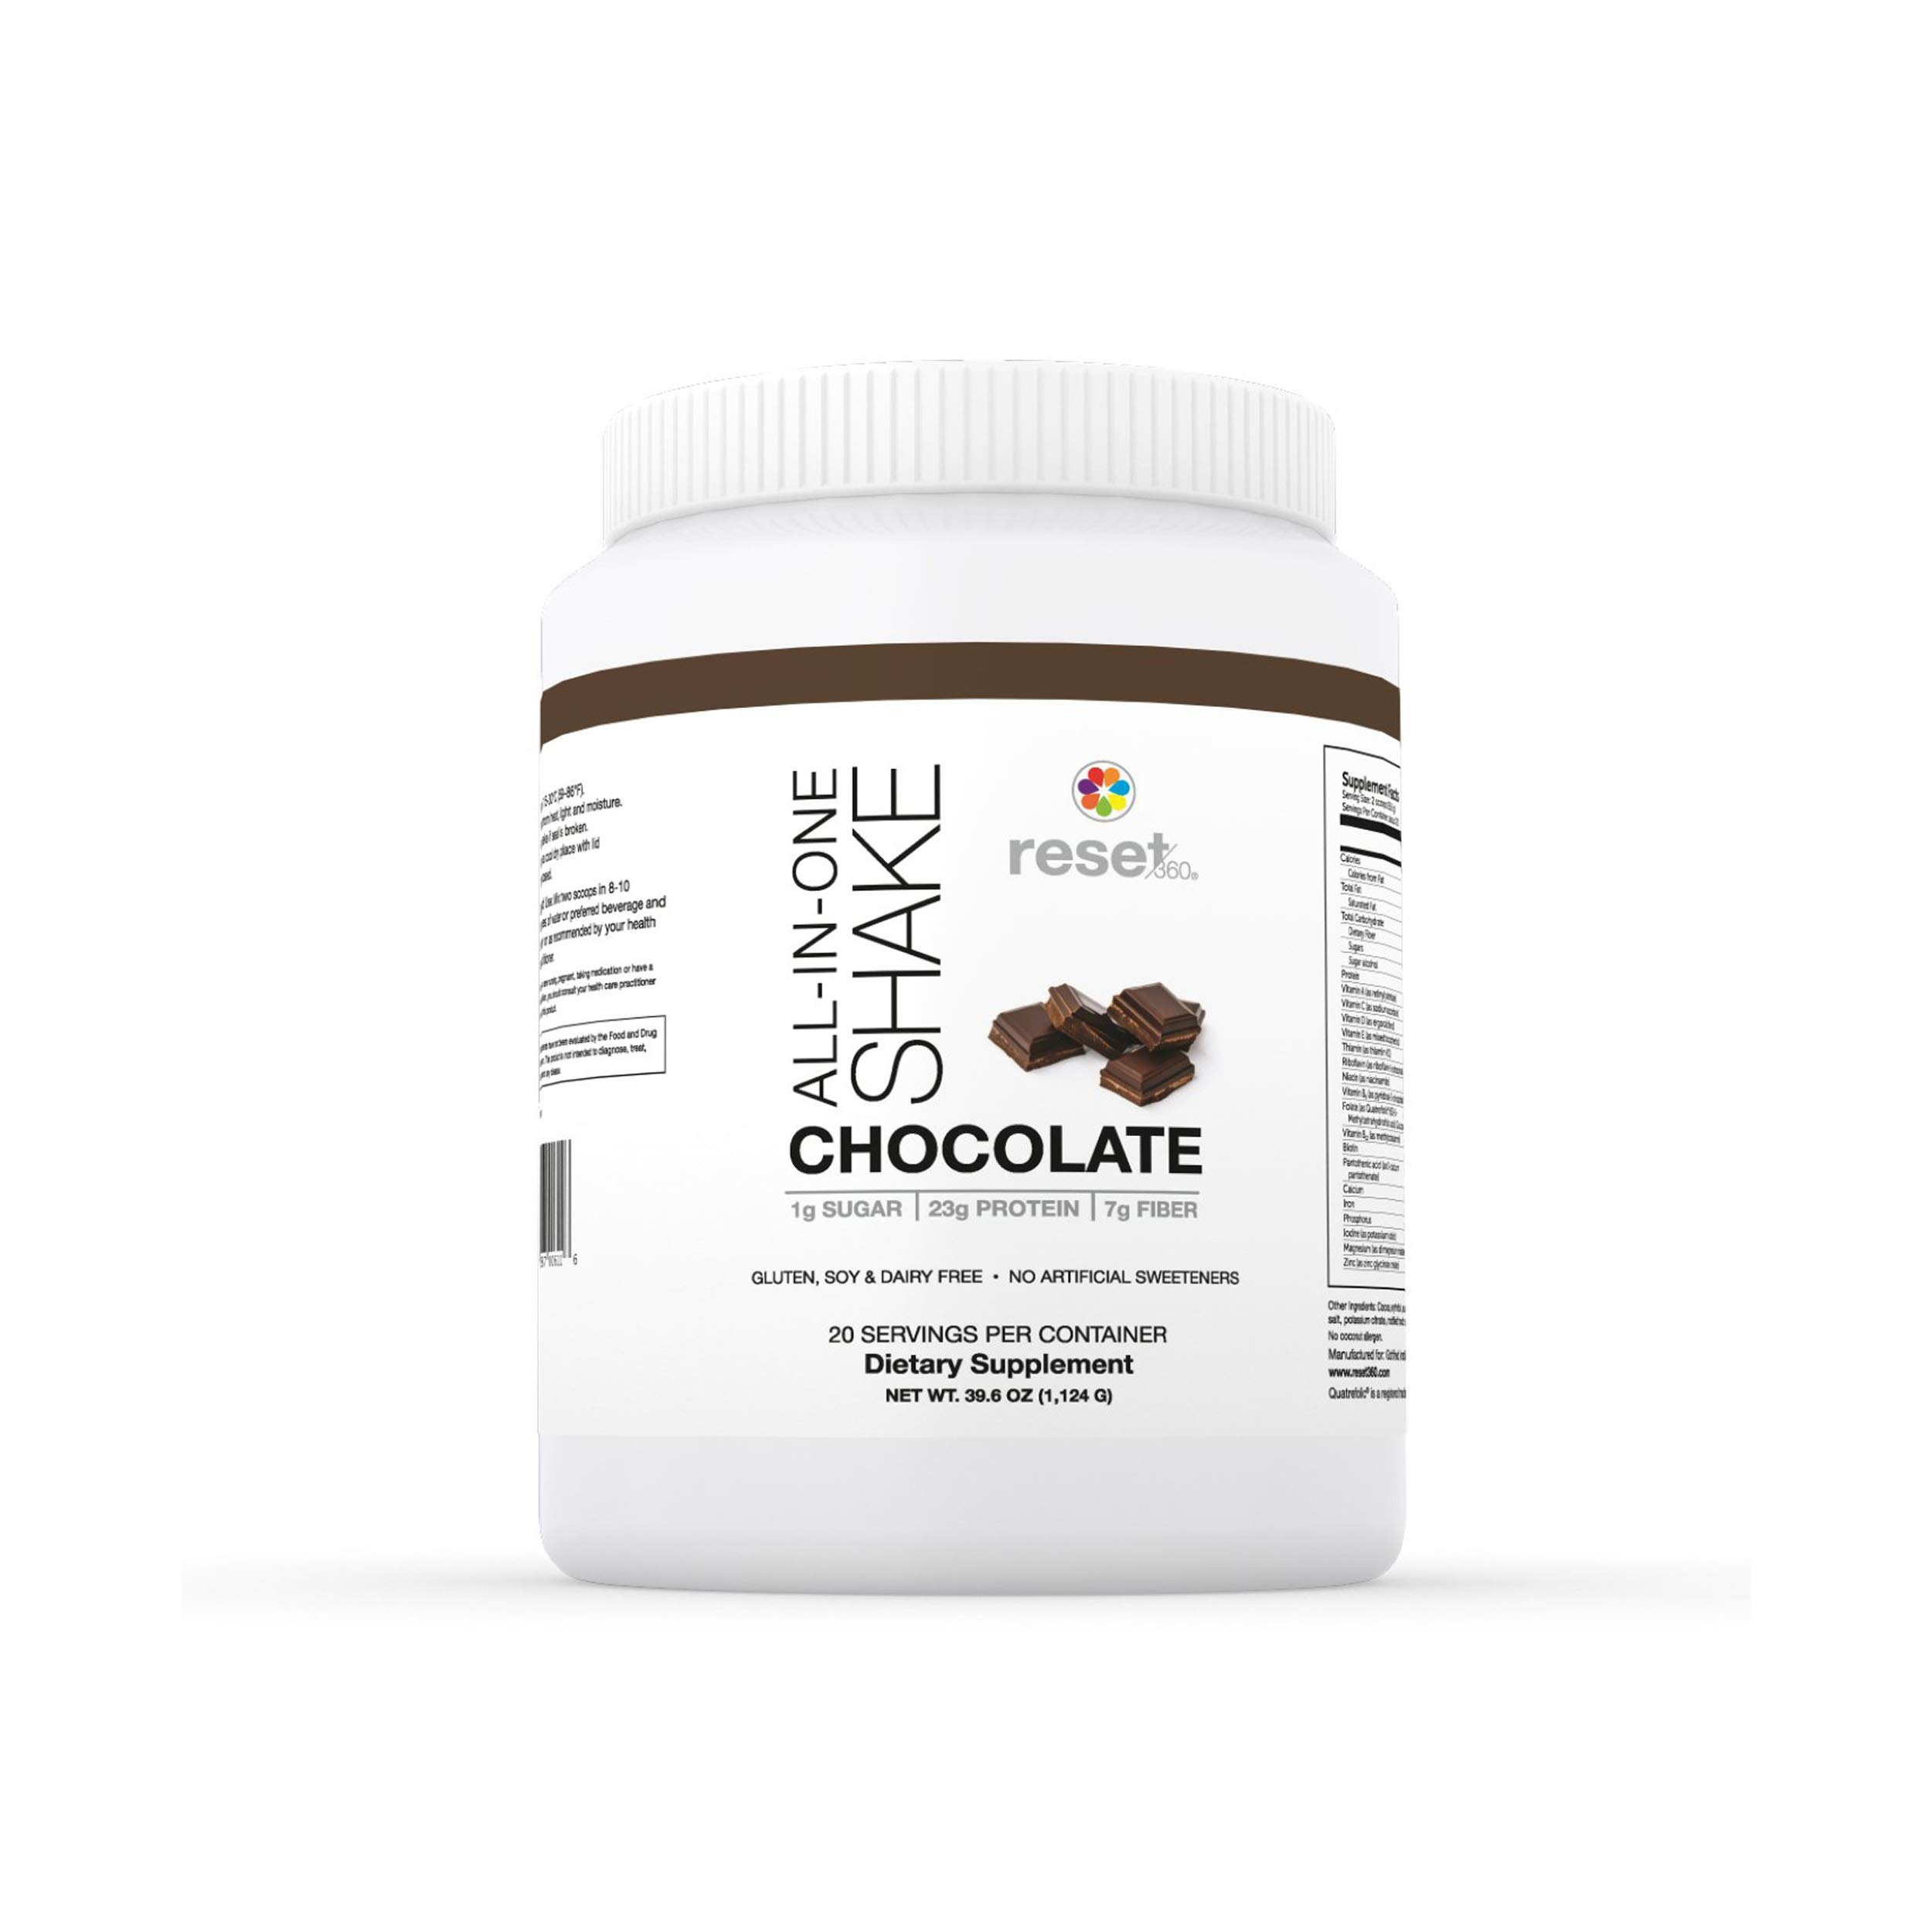 Chocolate Protein Powder Meal Replacement Shake - Low Carb Dietary Supplement Protein Powder- Weight Loss Shakes from Dr Sara Gottfried Author of The Hormone Cure - Reset360 by Reset360